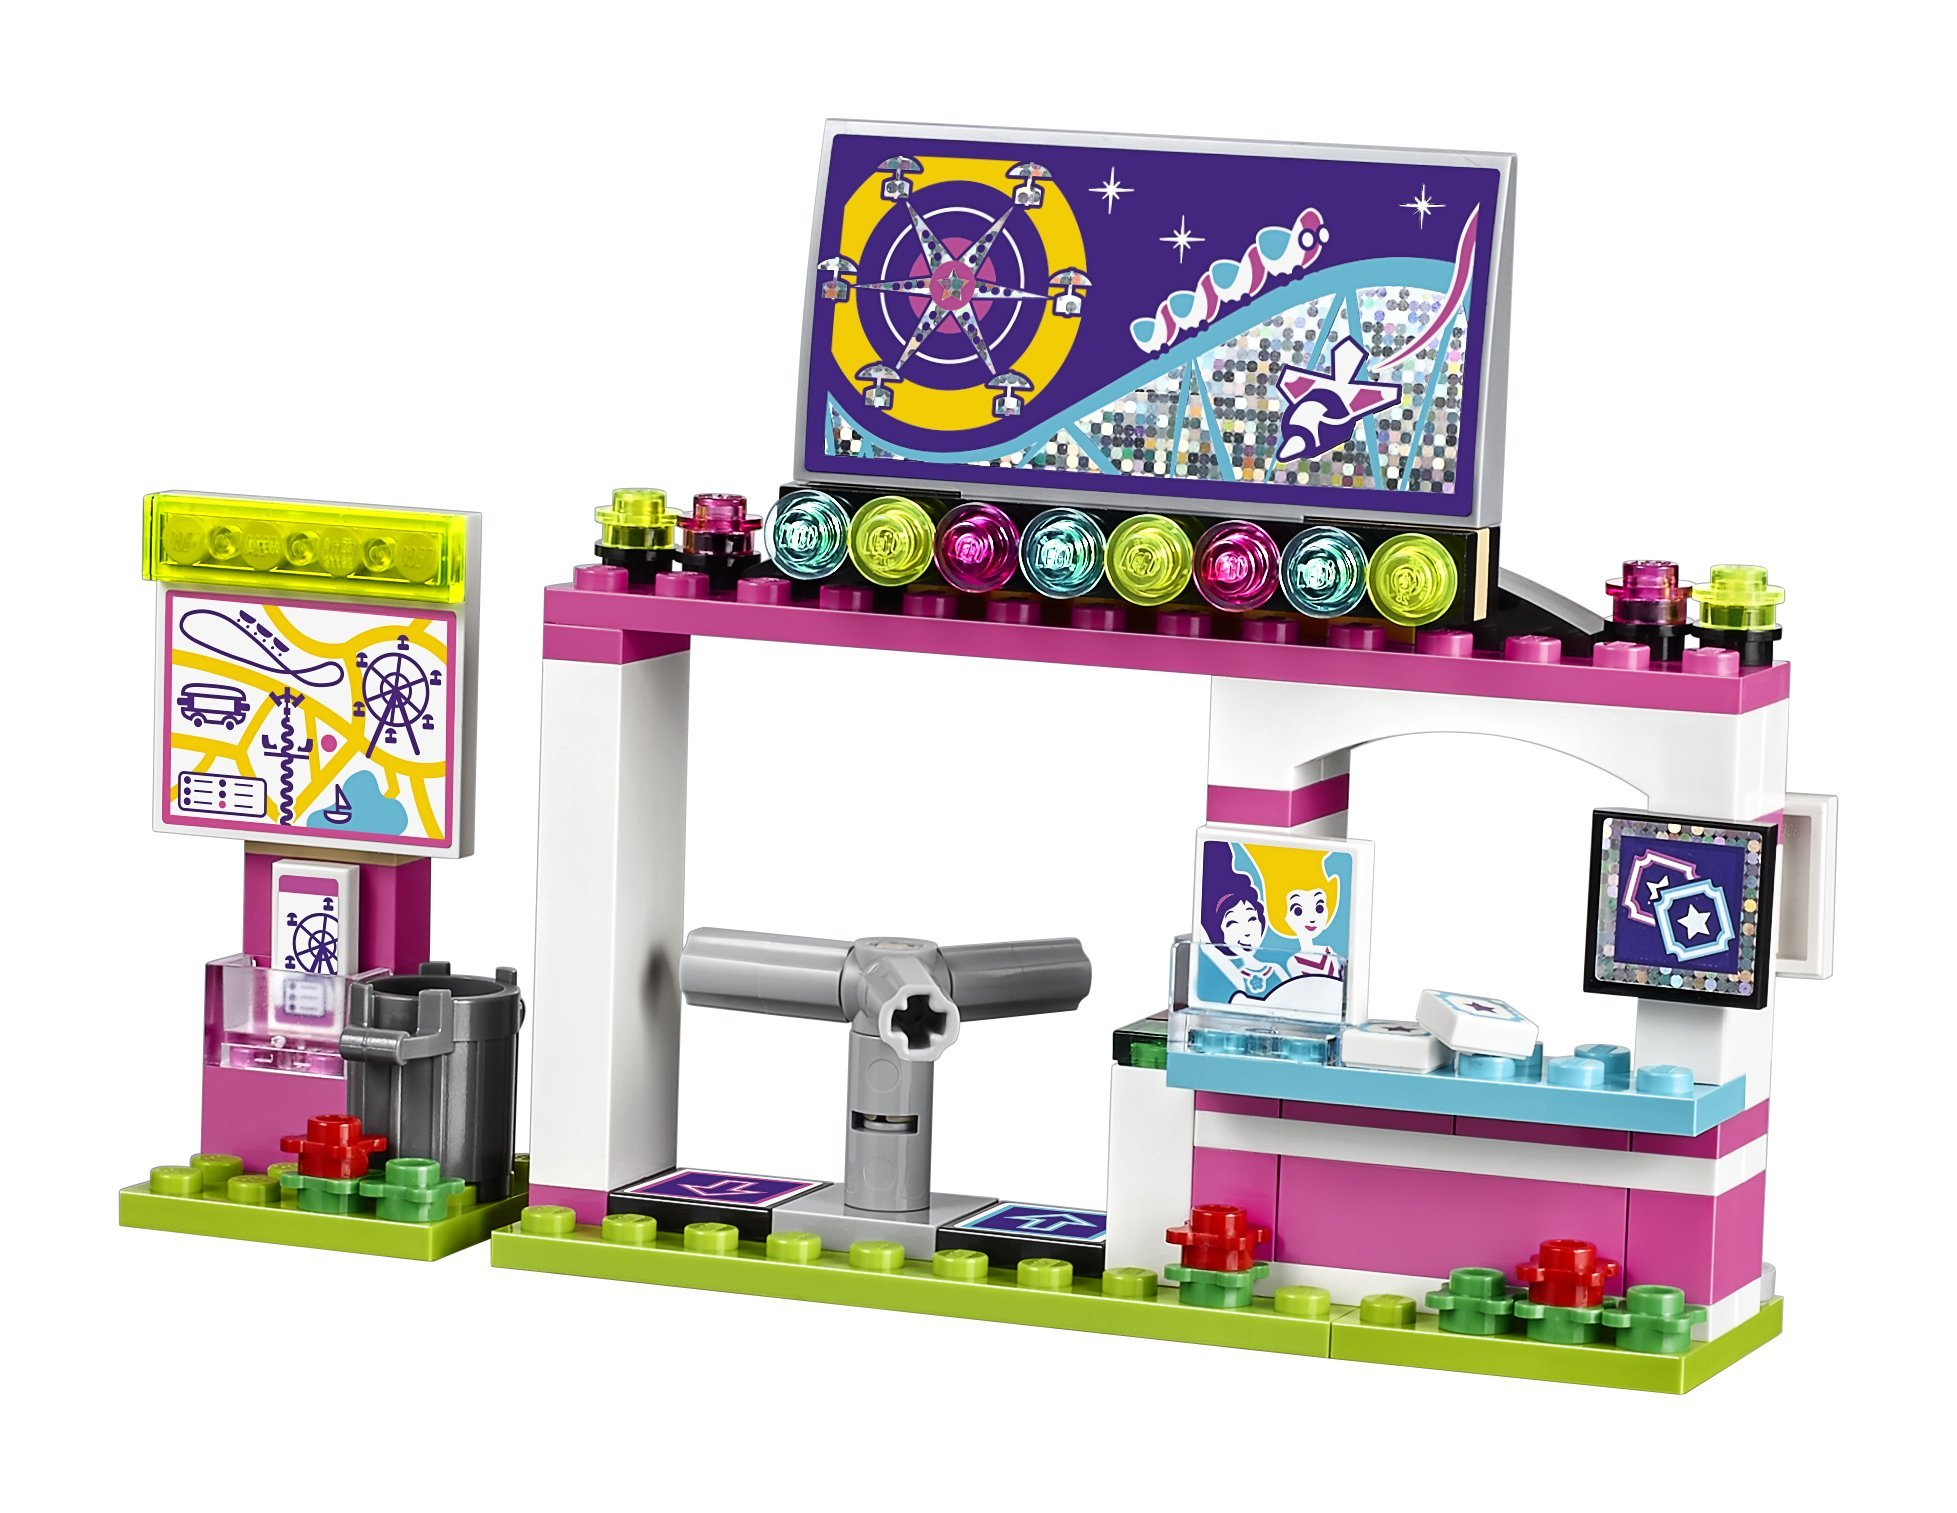 LEGO Friends Amusement Park Roller Coaster 41130 Toy for Girls and Boys by LEGO (Image #7)